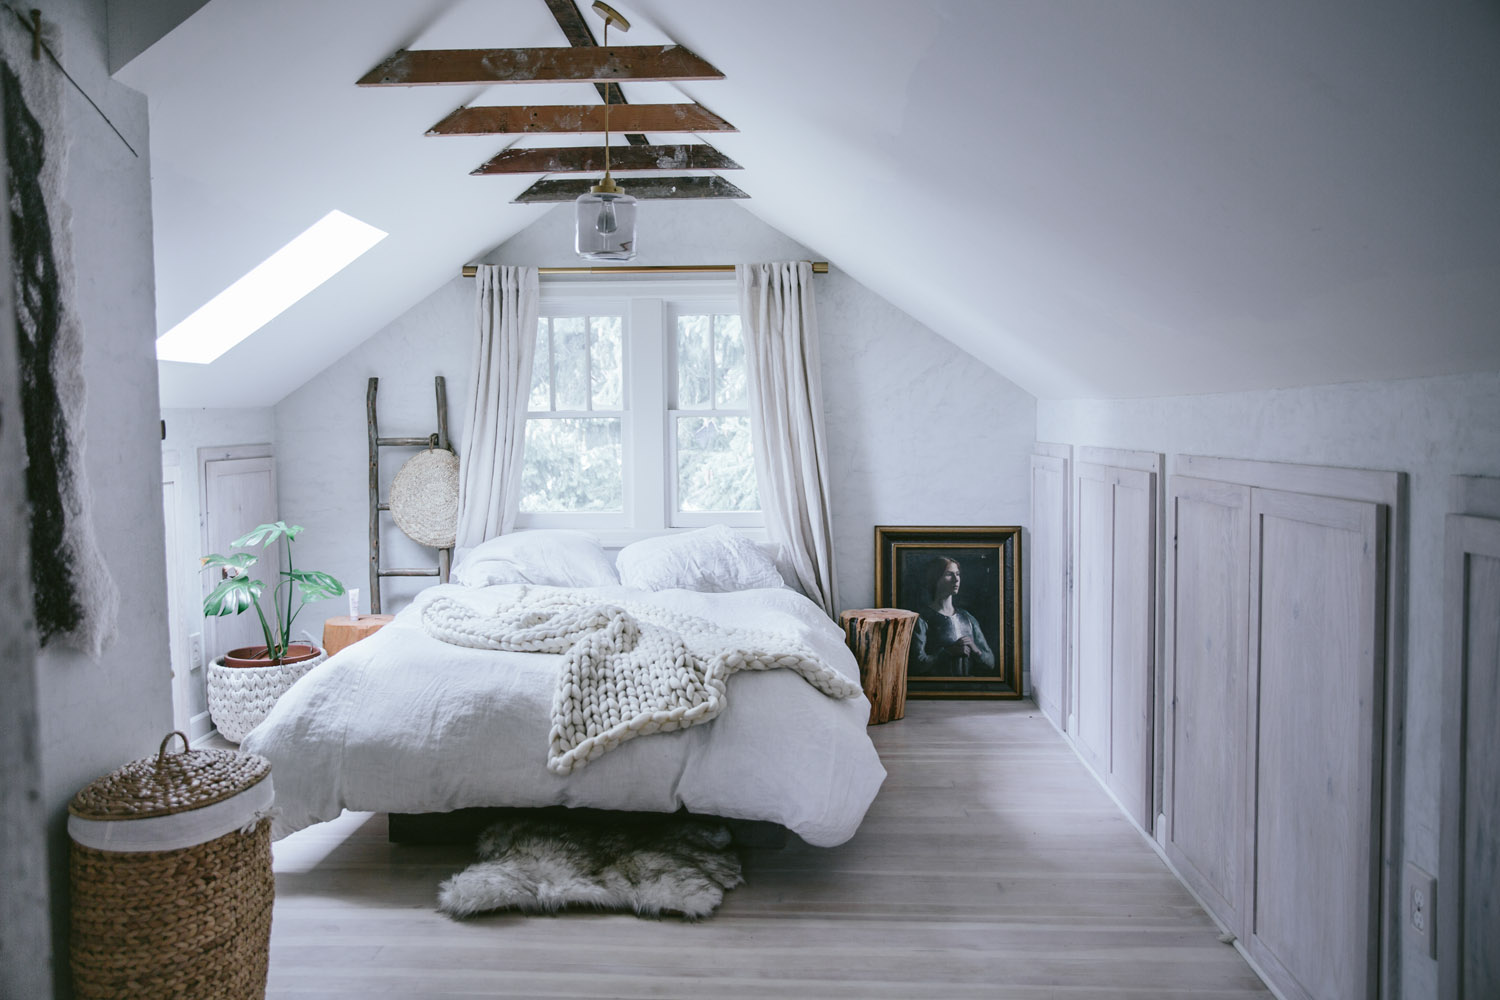 Bedrooms & A dreamy attic bedroom makeover - Daily Dream Decor